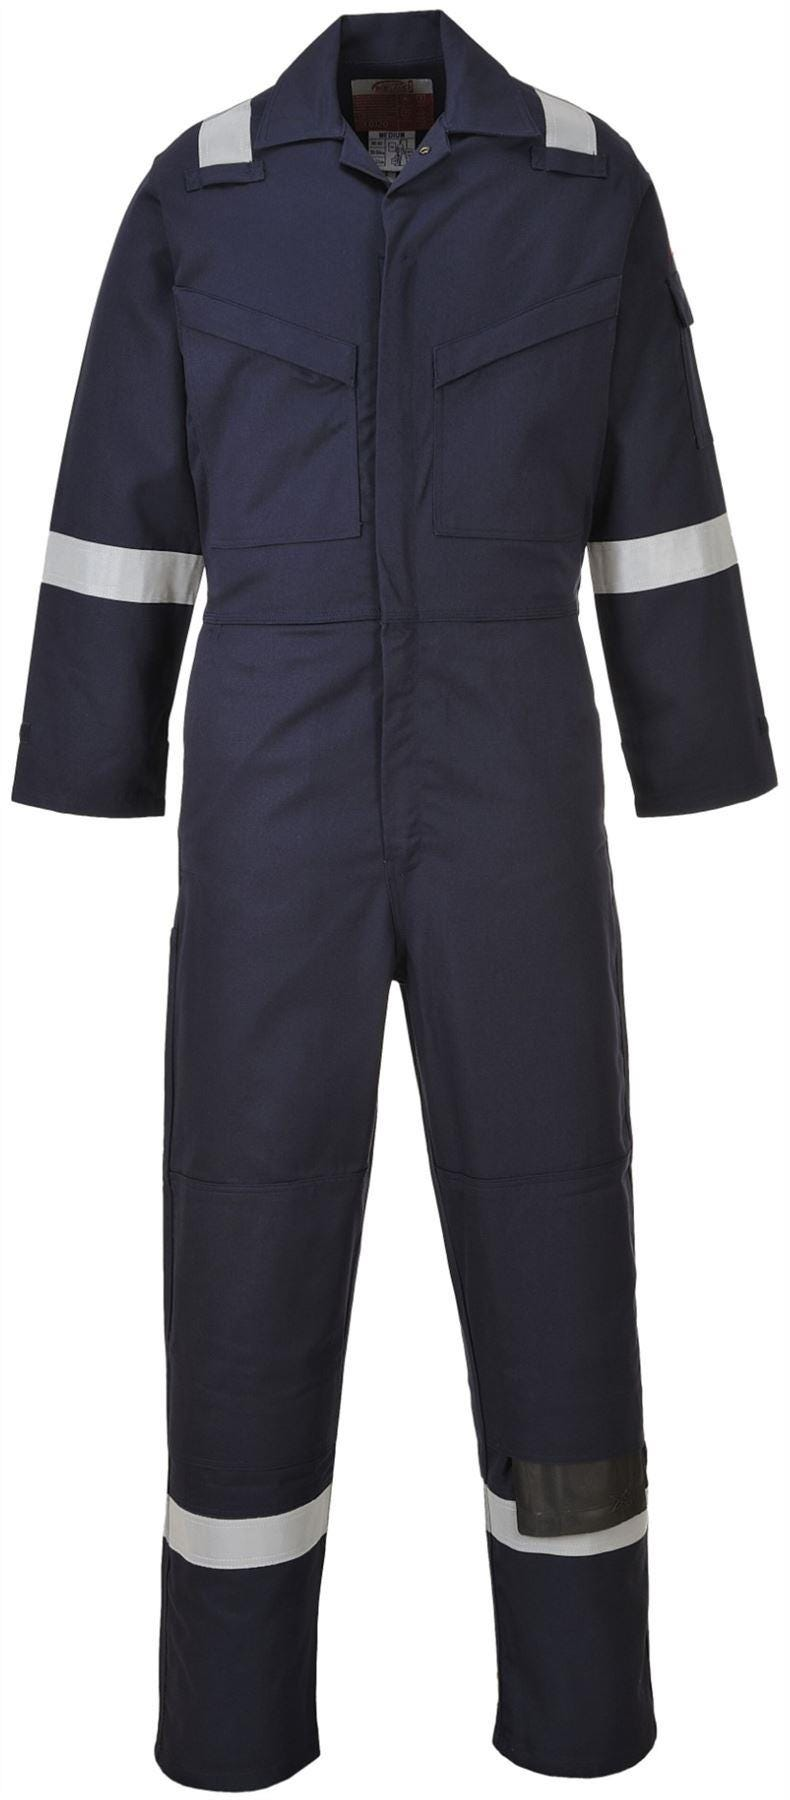 Portwest Flame Resistant Anti-Static Overall - Navy